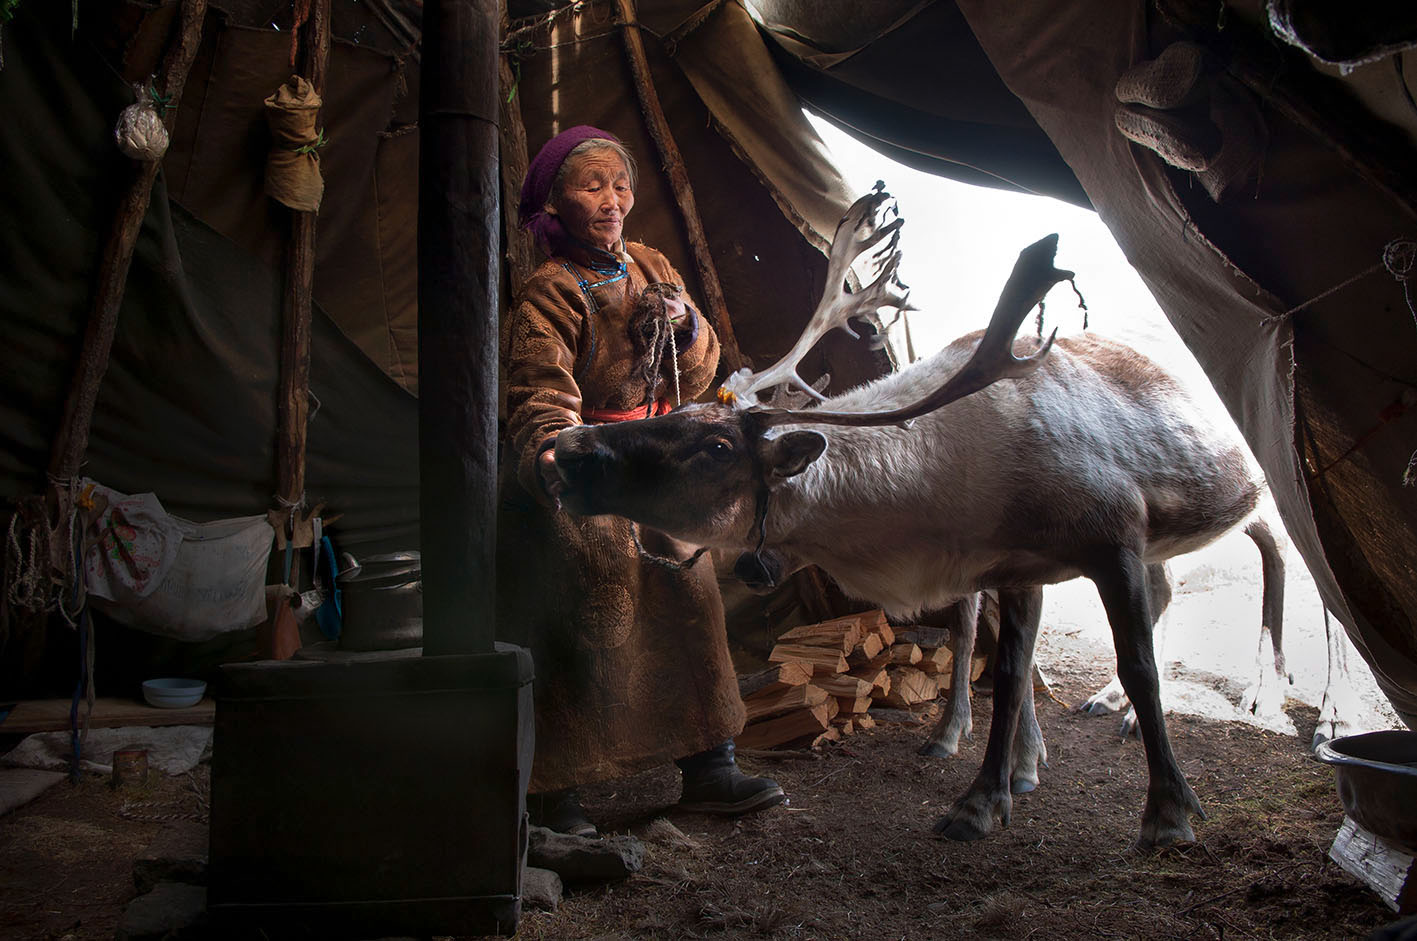 36_sardar_h_woman-feeding-salt-to-deer_west-taiga_hovsgol-province_mongolia_2006-klein